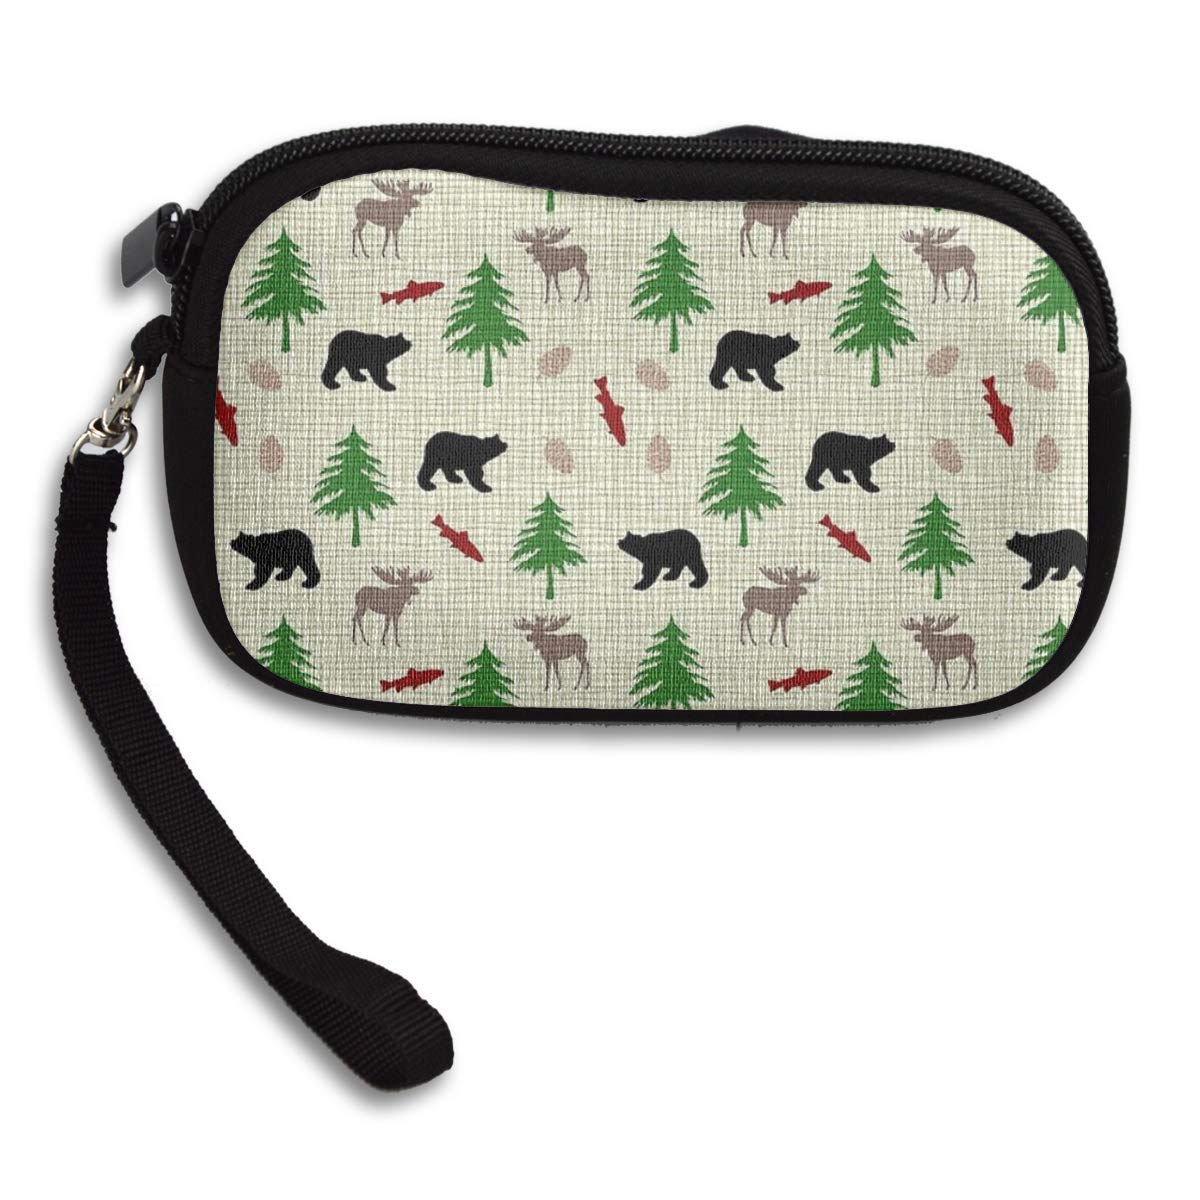 Moose Bear And Trees Pattern Coin Pouch Clutch Purse Wristlet Wallet Phone Card Holder Handbag